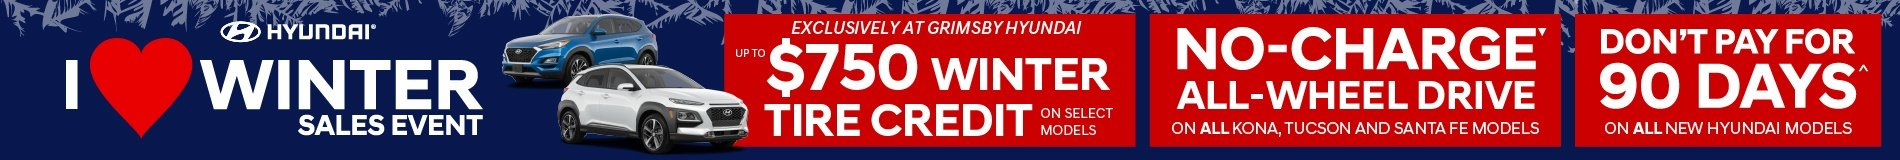 $750 Winter Tire Credit